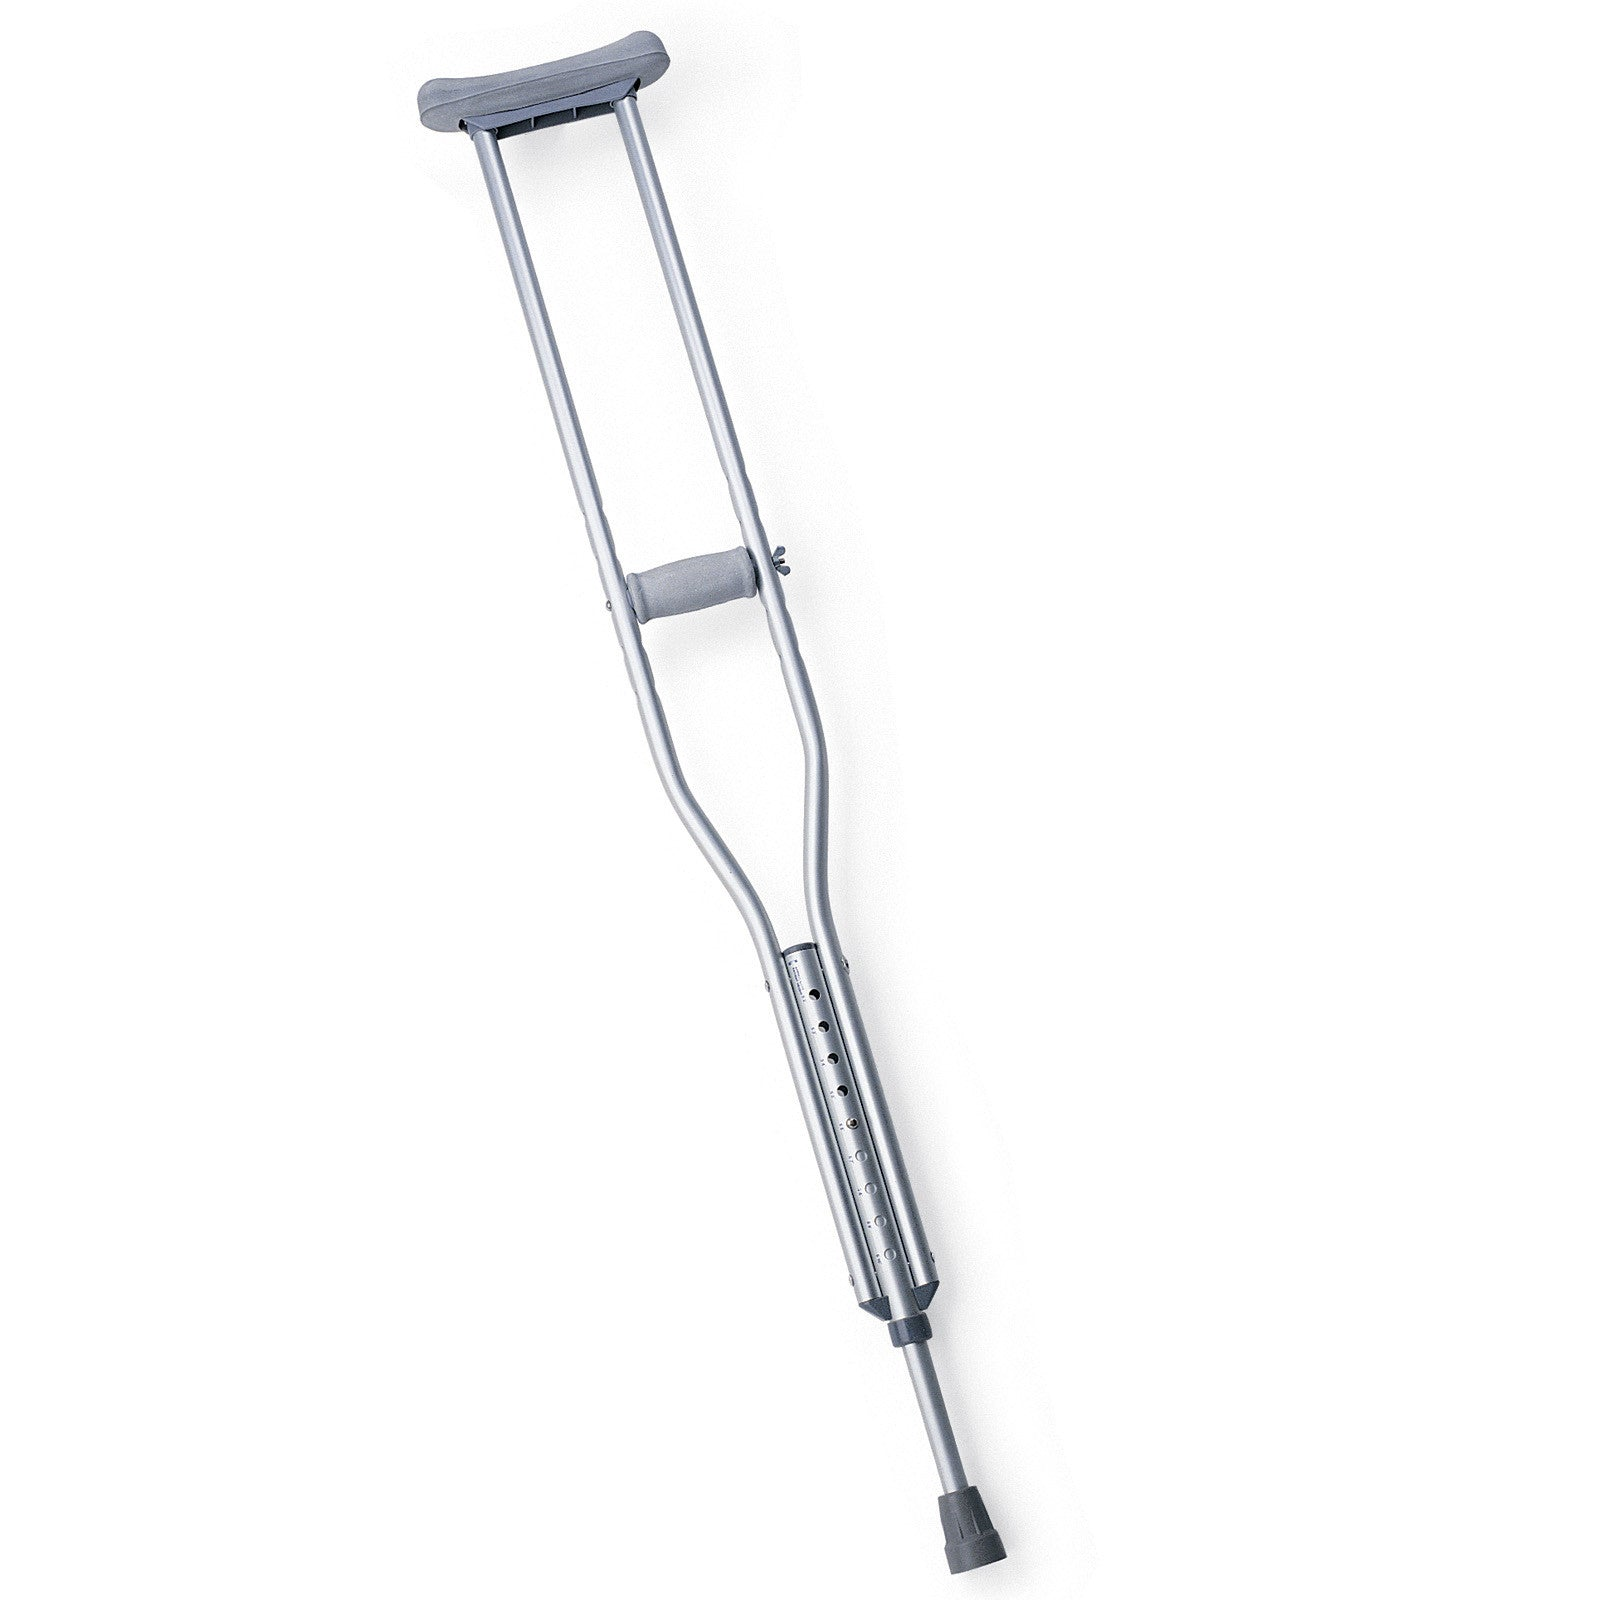 Medline Tall Standard Aluminum Crutches , Crutches - Medline, Scrubsnmed